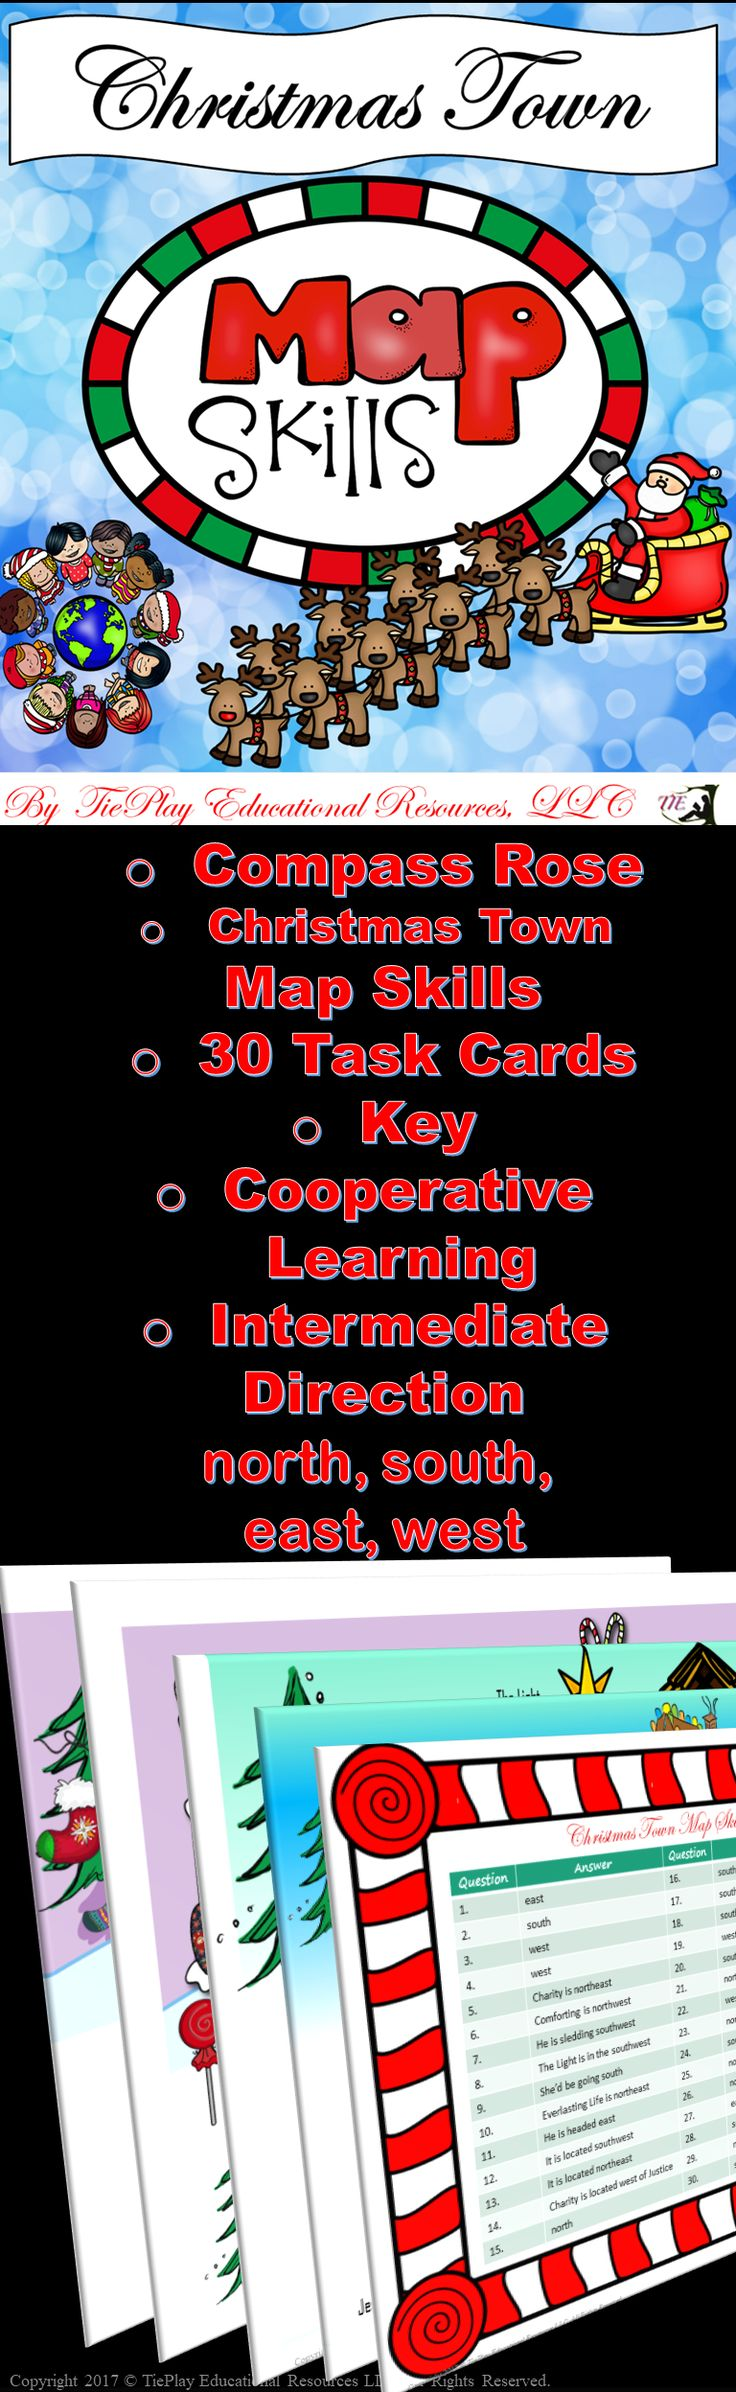 Price $4.75 Perfect learning fun for the holidays! Christmas Town Map Skills is a kid friendly way to learn or review directions of north, south, east, west, intermediate skills and Christian values. This map skills game contains: game board of lovely Christmas Town scenes, compass rose/scale, directions for use, 30 task cards, 2 awards cards and key